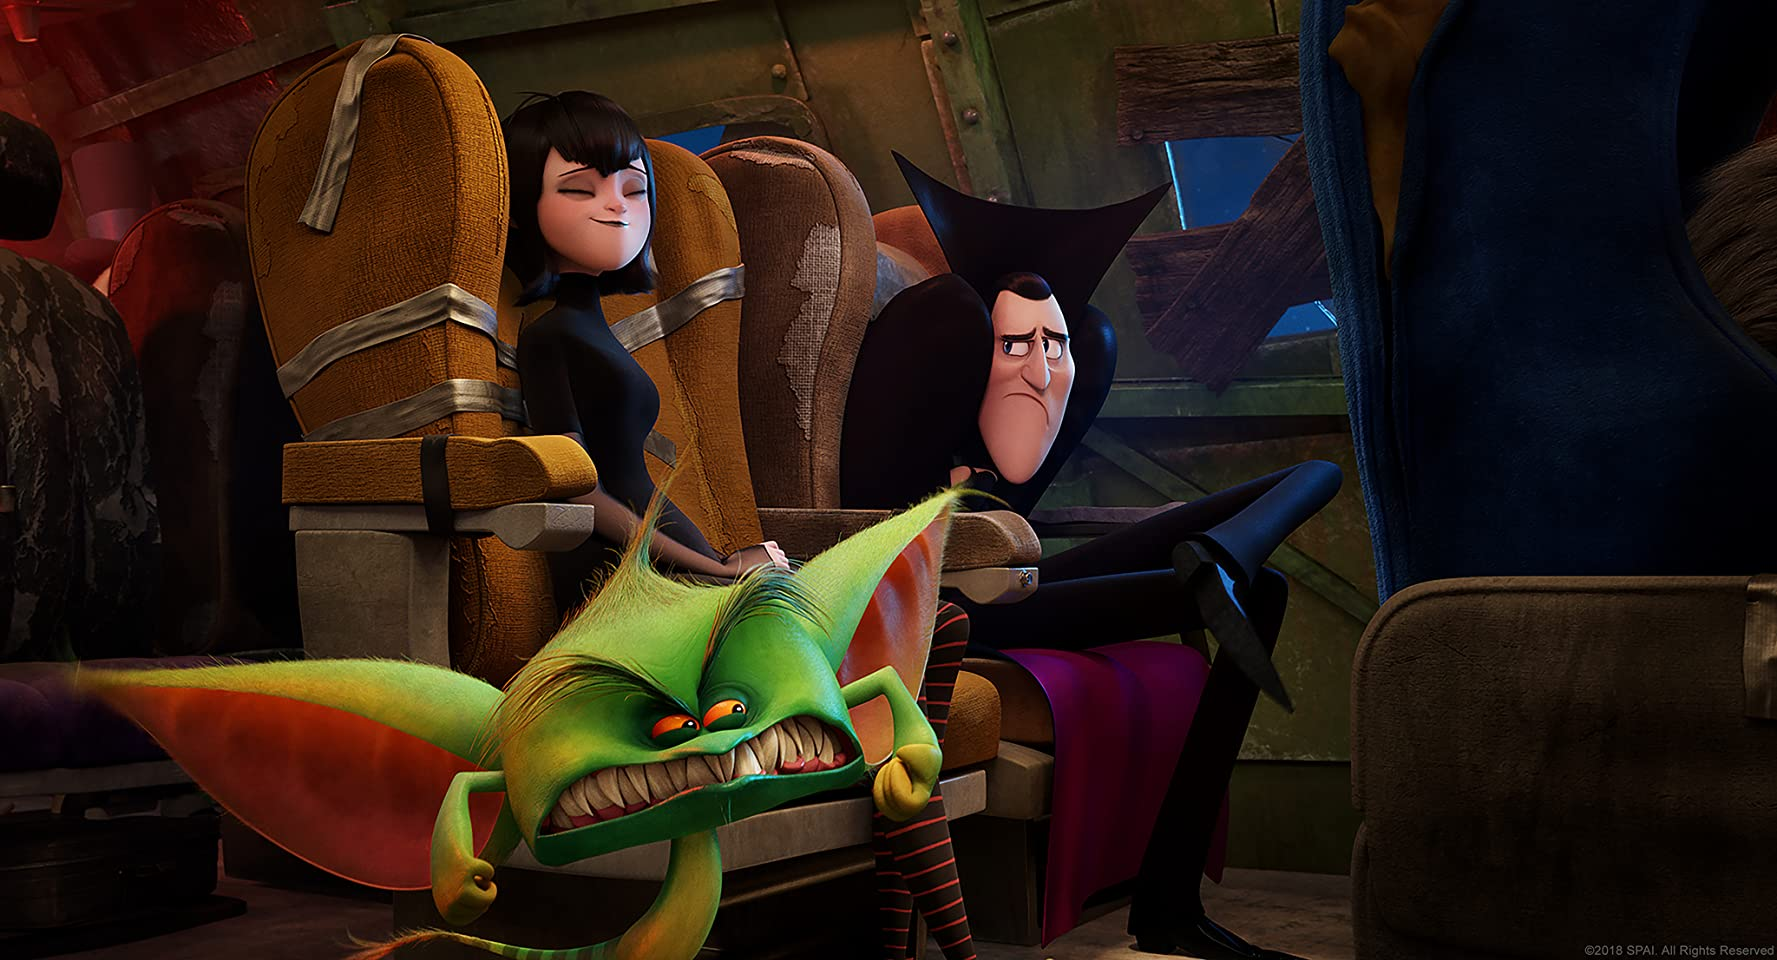 Adam Sandler and Selena Gomez in Hotel Transylvania 3: Summer Vacation (2018)